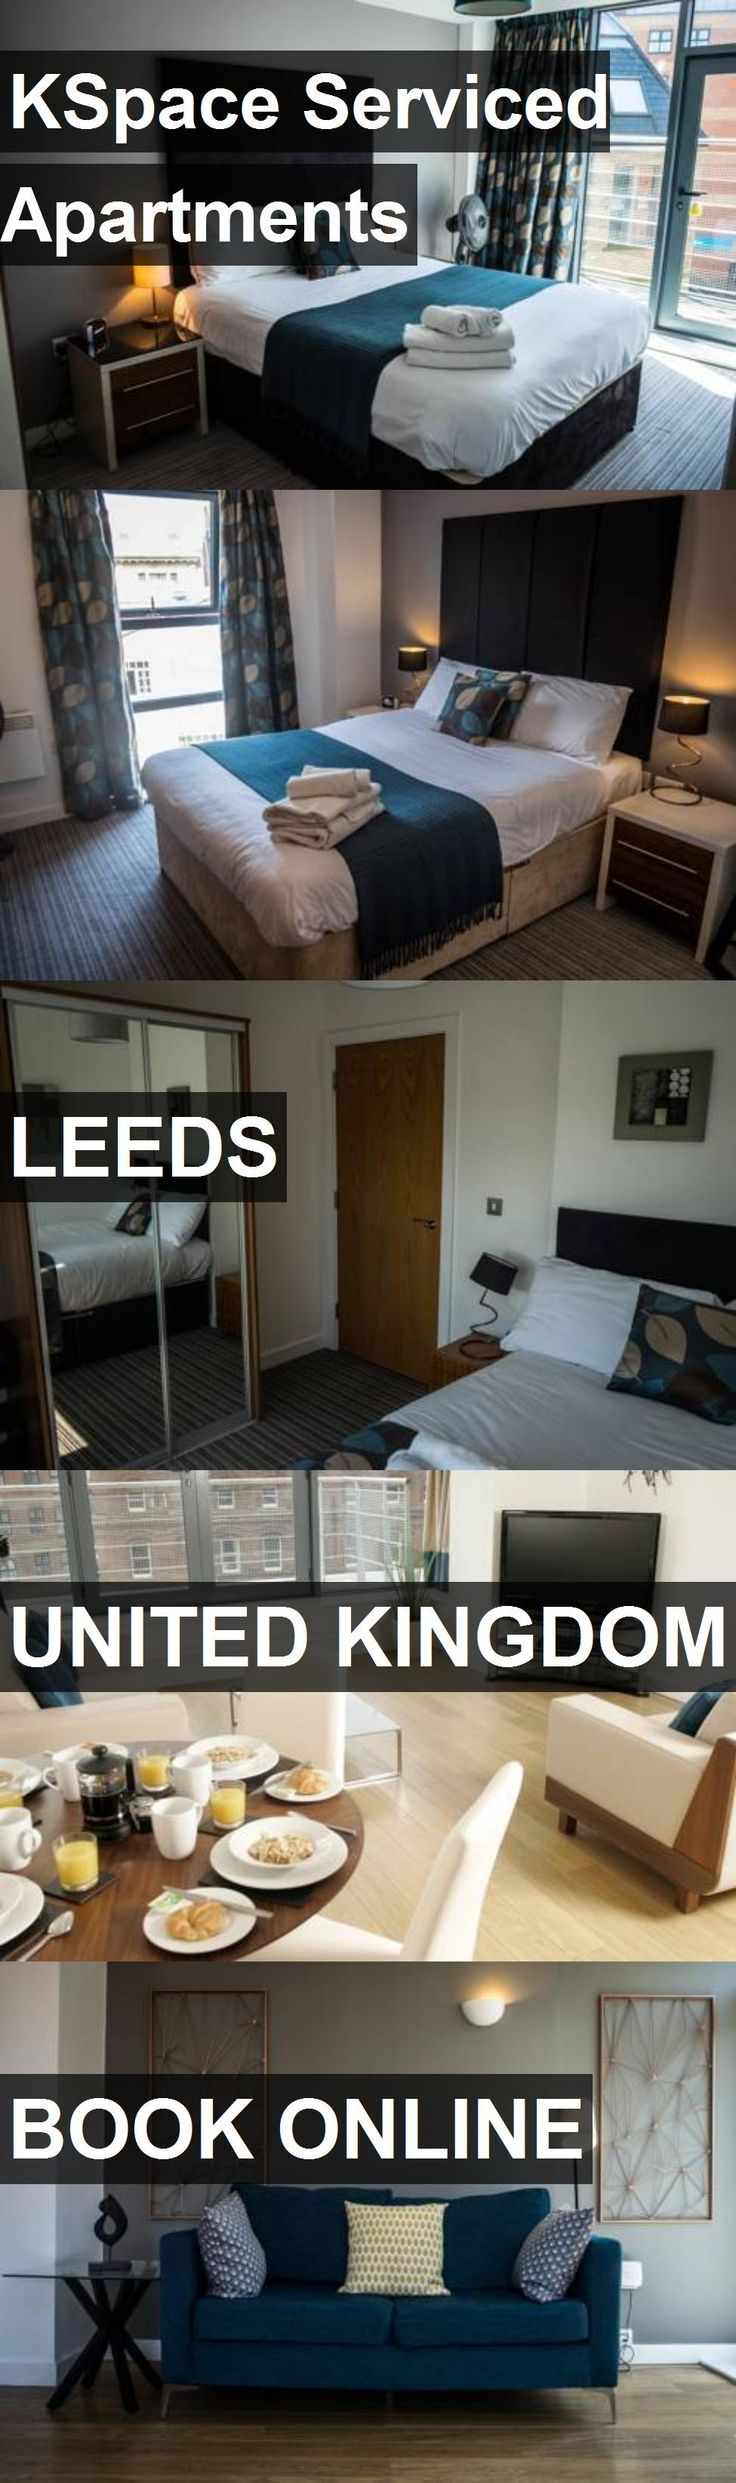 Hotel KSpace Serviced Apartments in Leeds, United Kingdom. For more information, photos, reviews and best prices please follow the link. #UnitedKingdom #Leeds #KSpaceServicedApartments #hotel #travel #vacation